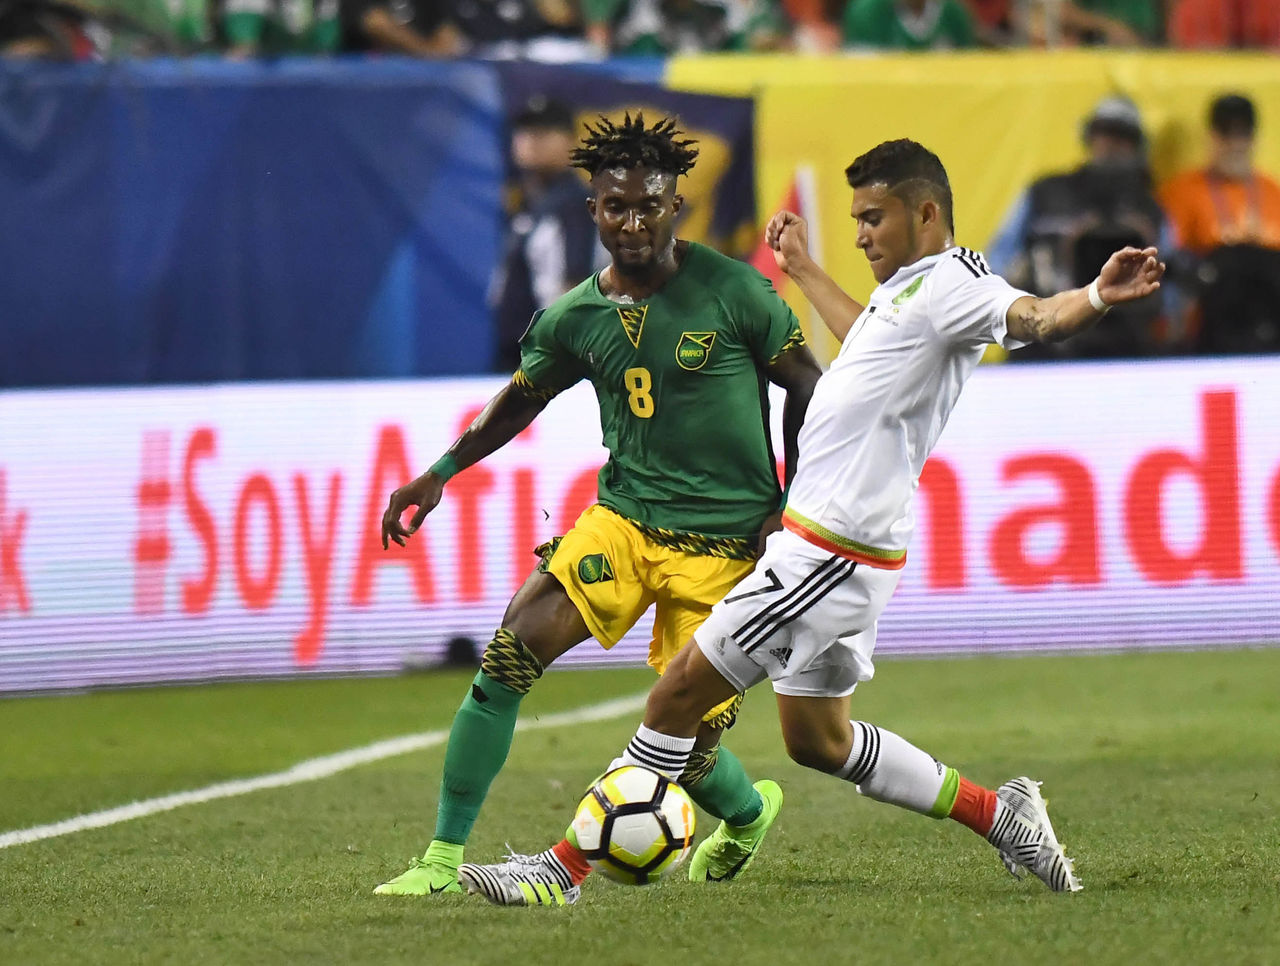 Cropped 2017 07 14t033315z 1949425248 nocid rtrmadp 3 soccer 2017 concacaf gold cup mexico at jamaica